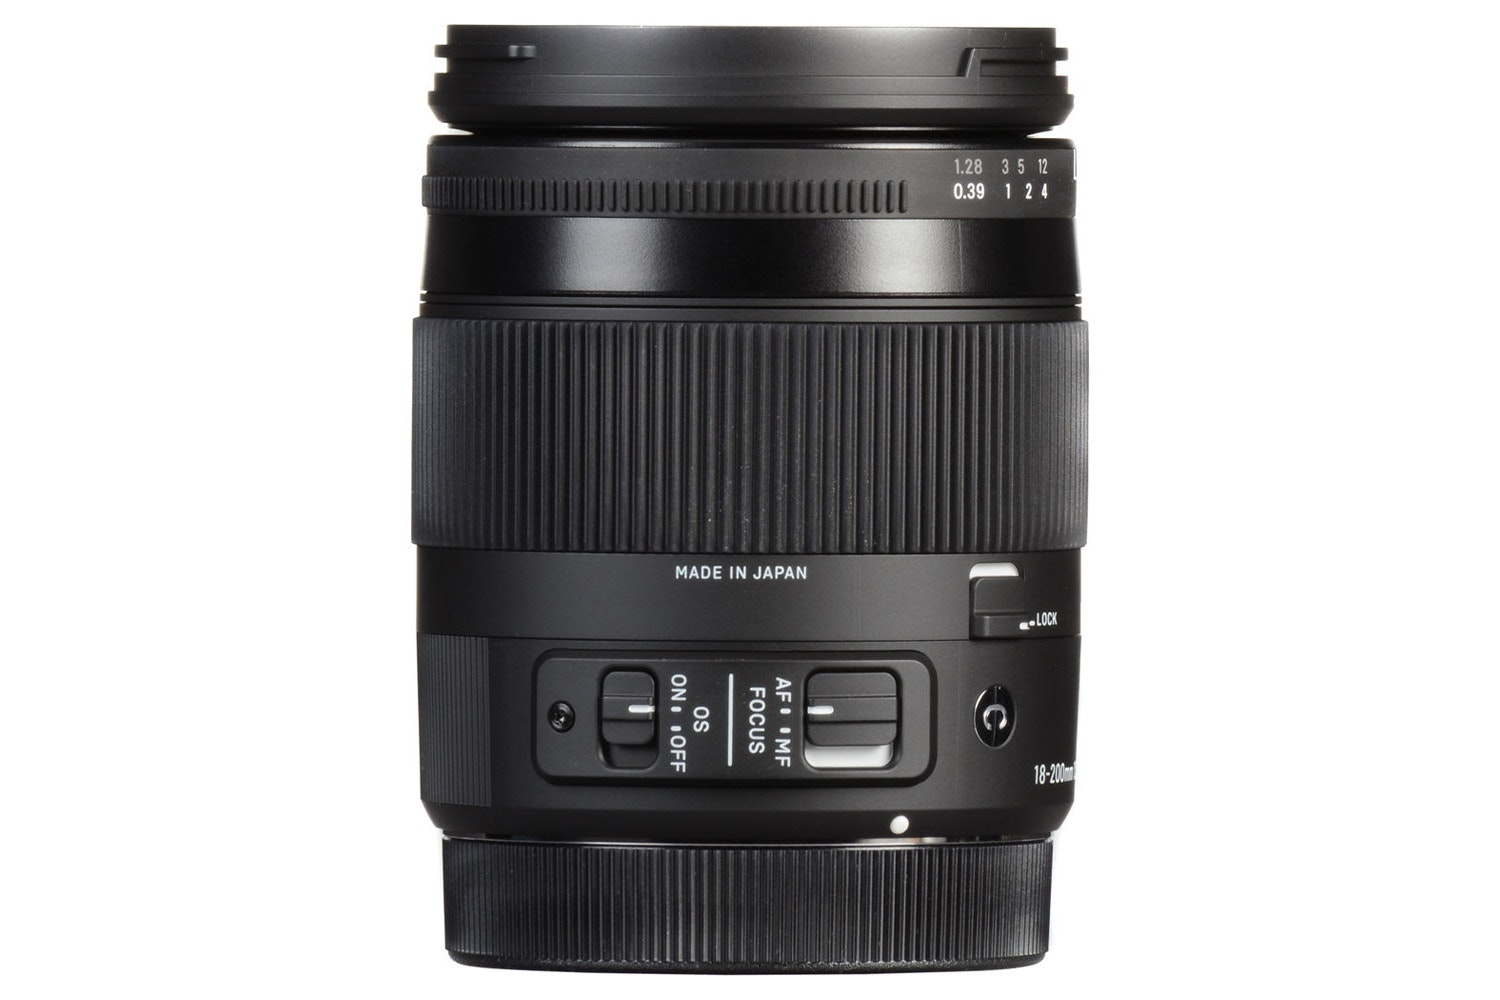 Sigma 18-200mm II DC OS lens for Nikon